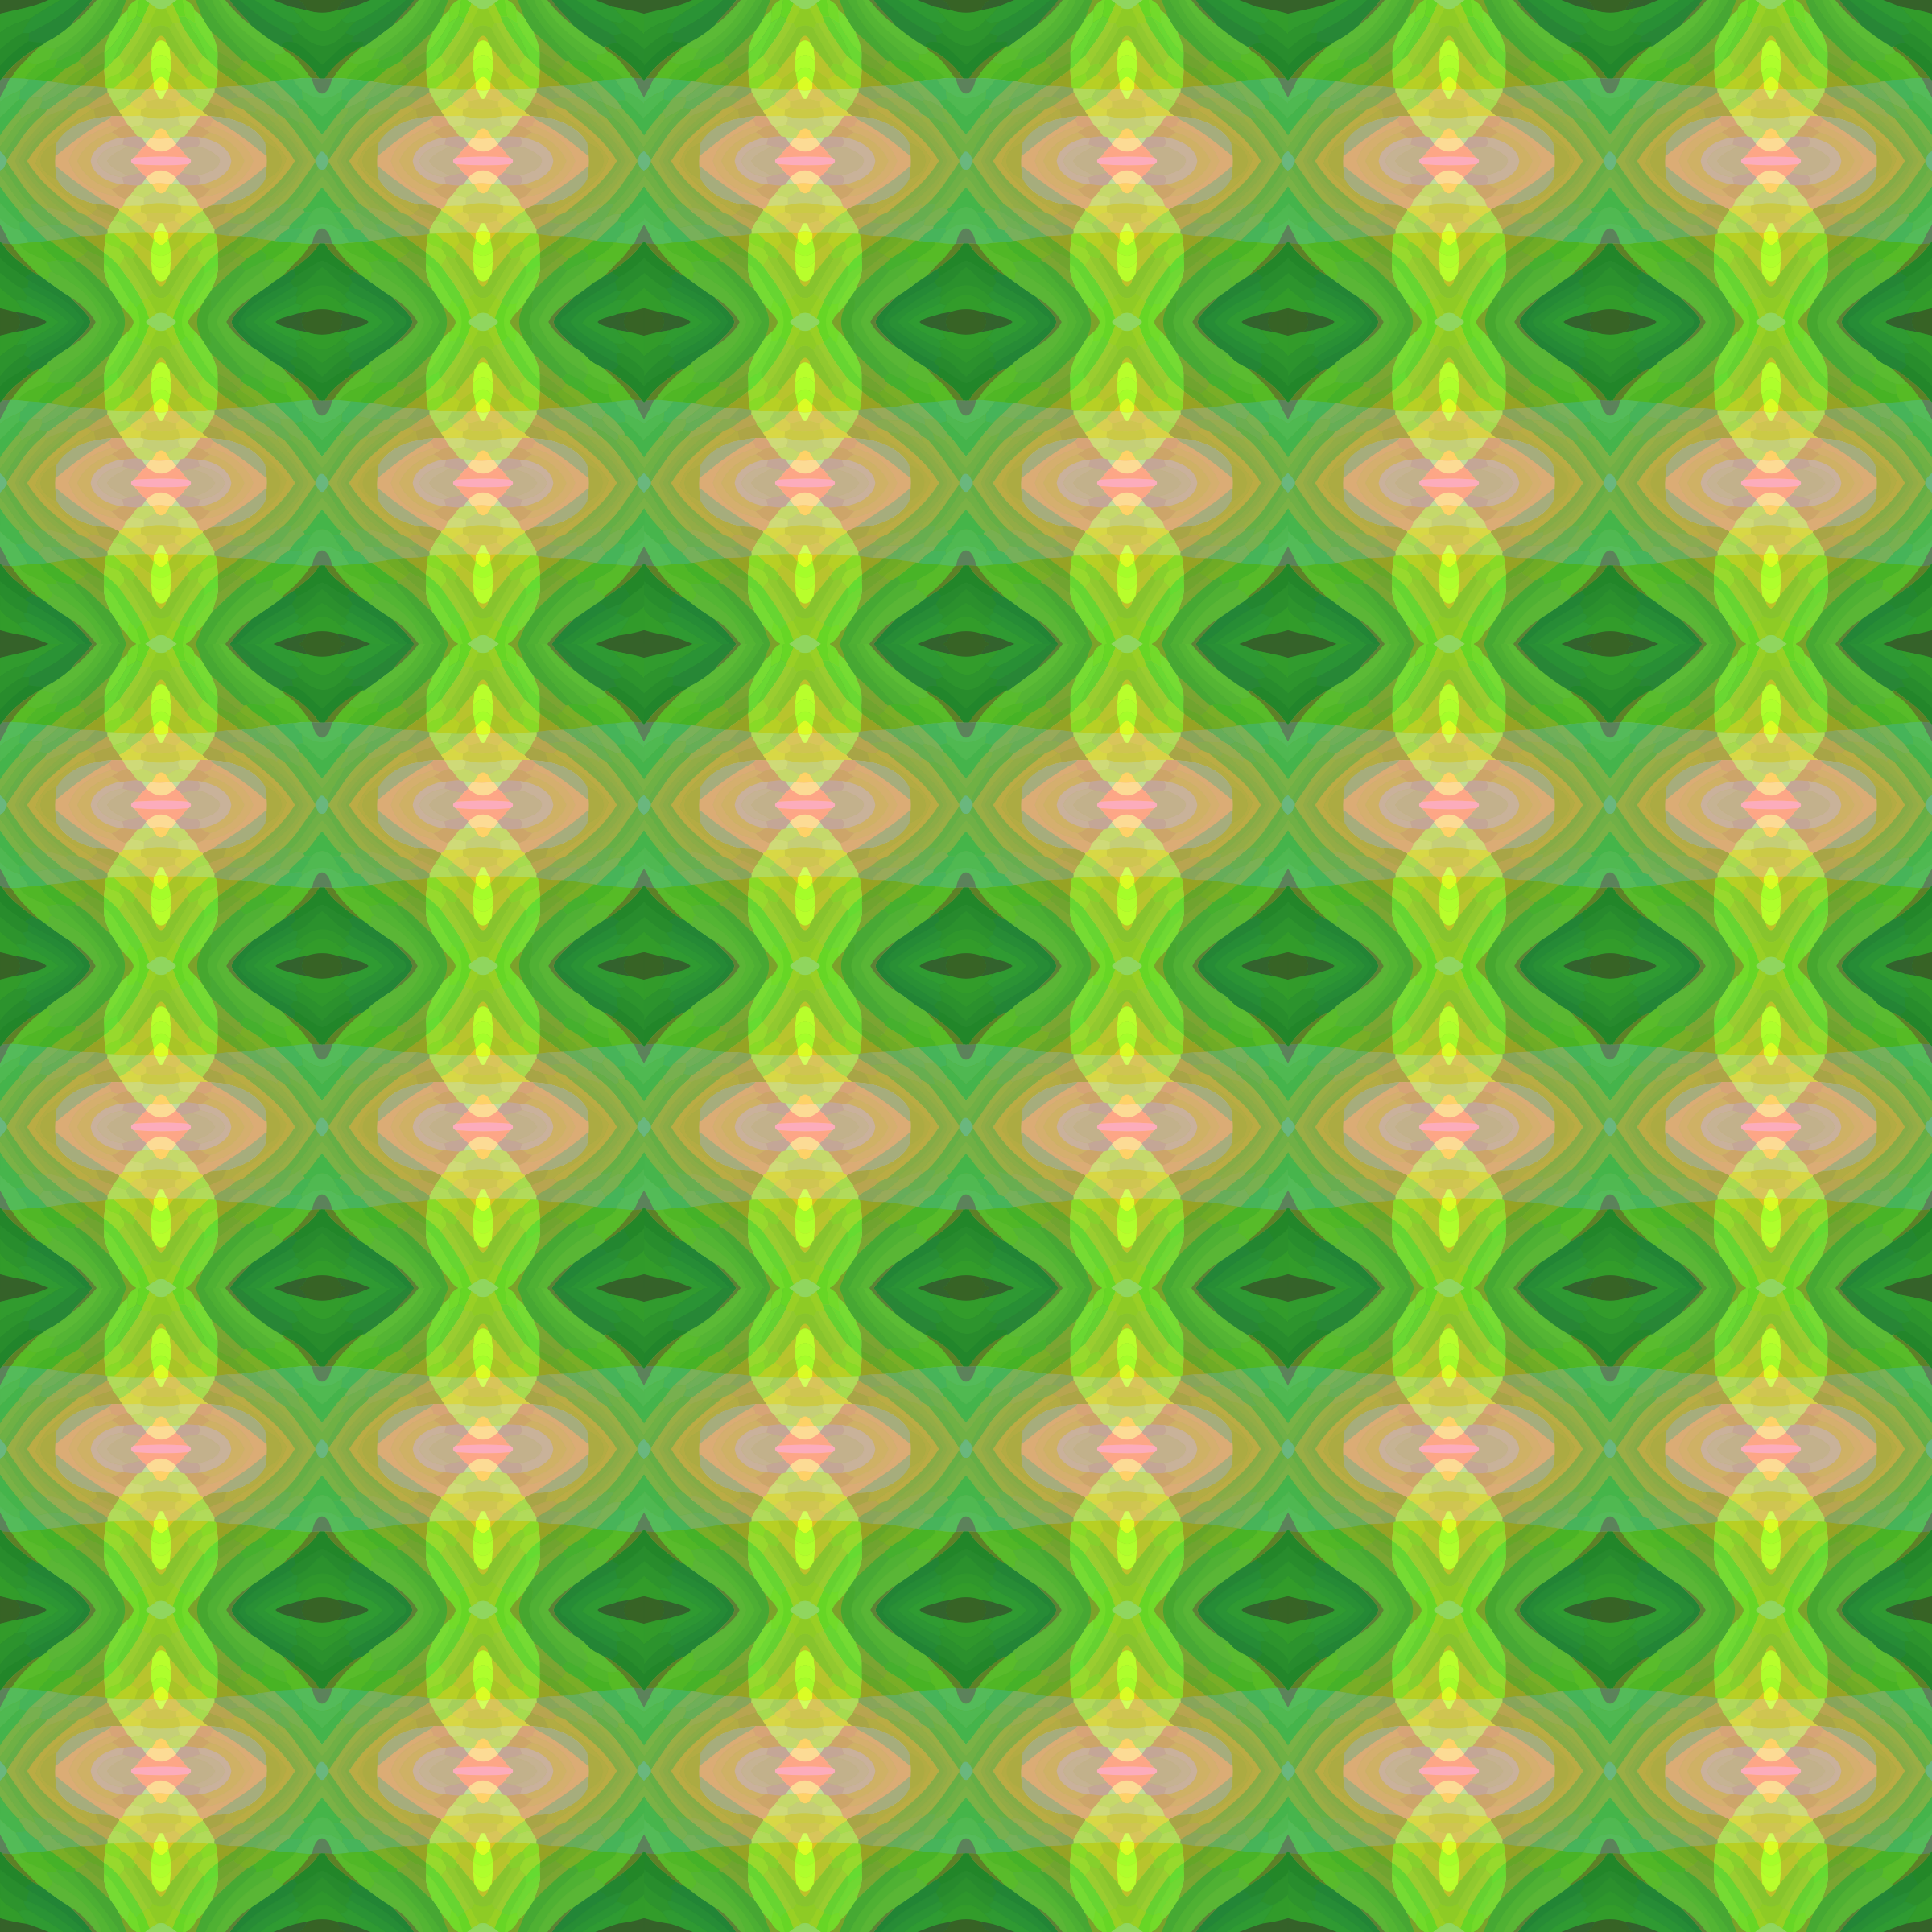 Background pattern 225 (colour 4) by Firkin